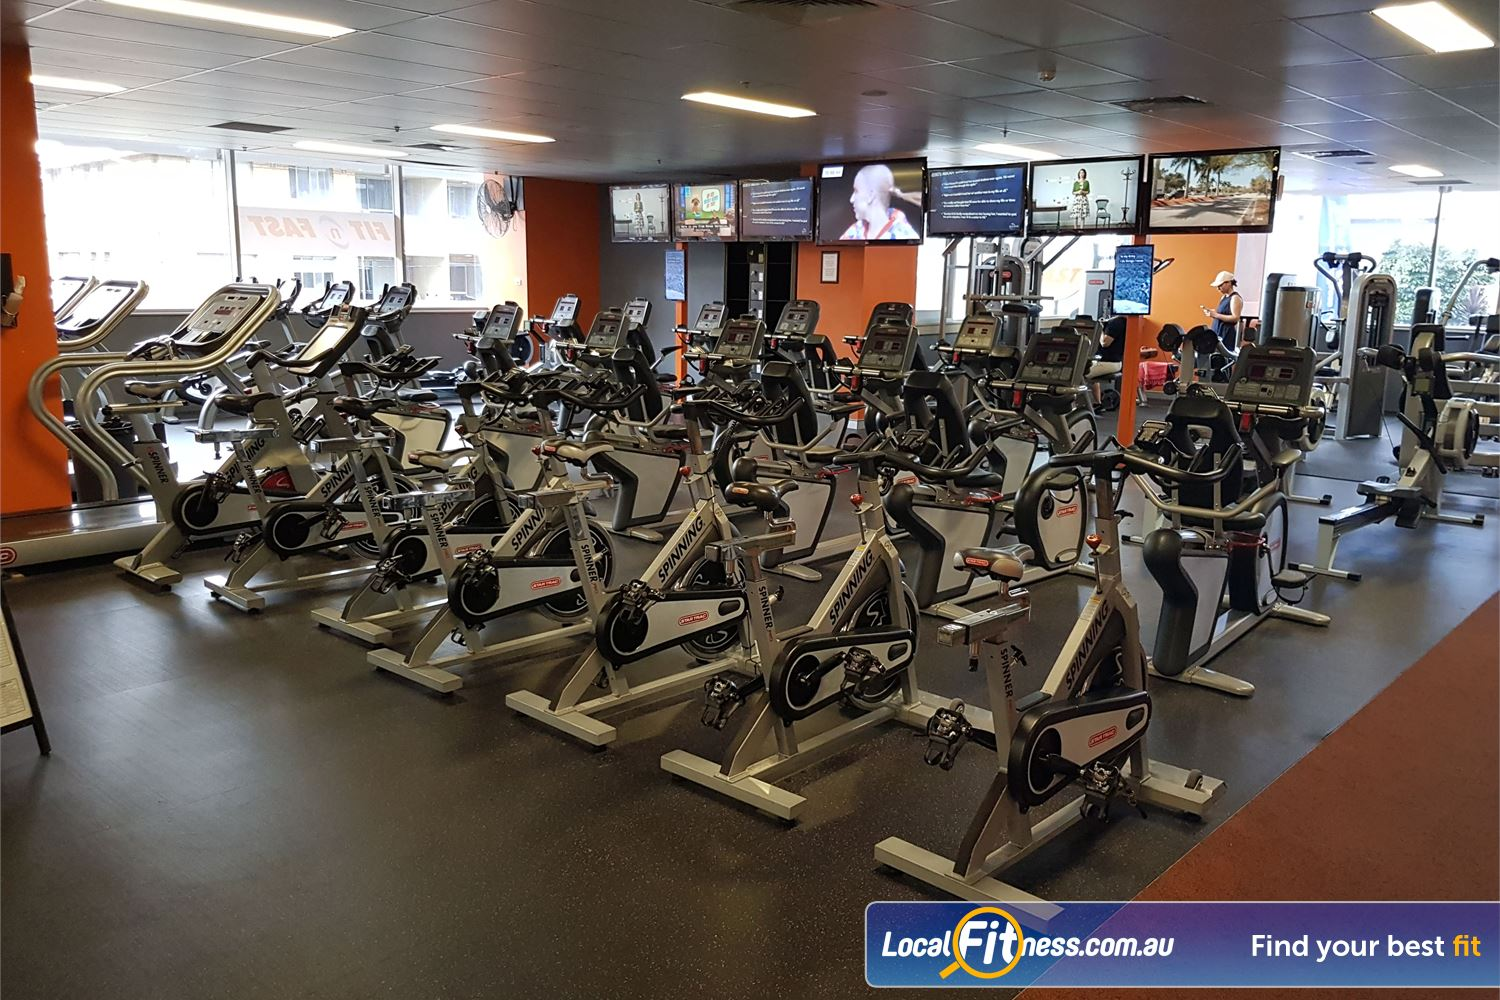 Fit n Fast Burwood The state of the art cardio area at FNF Burwood gym.